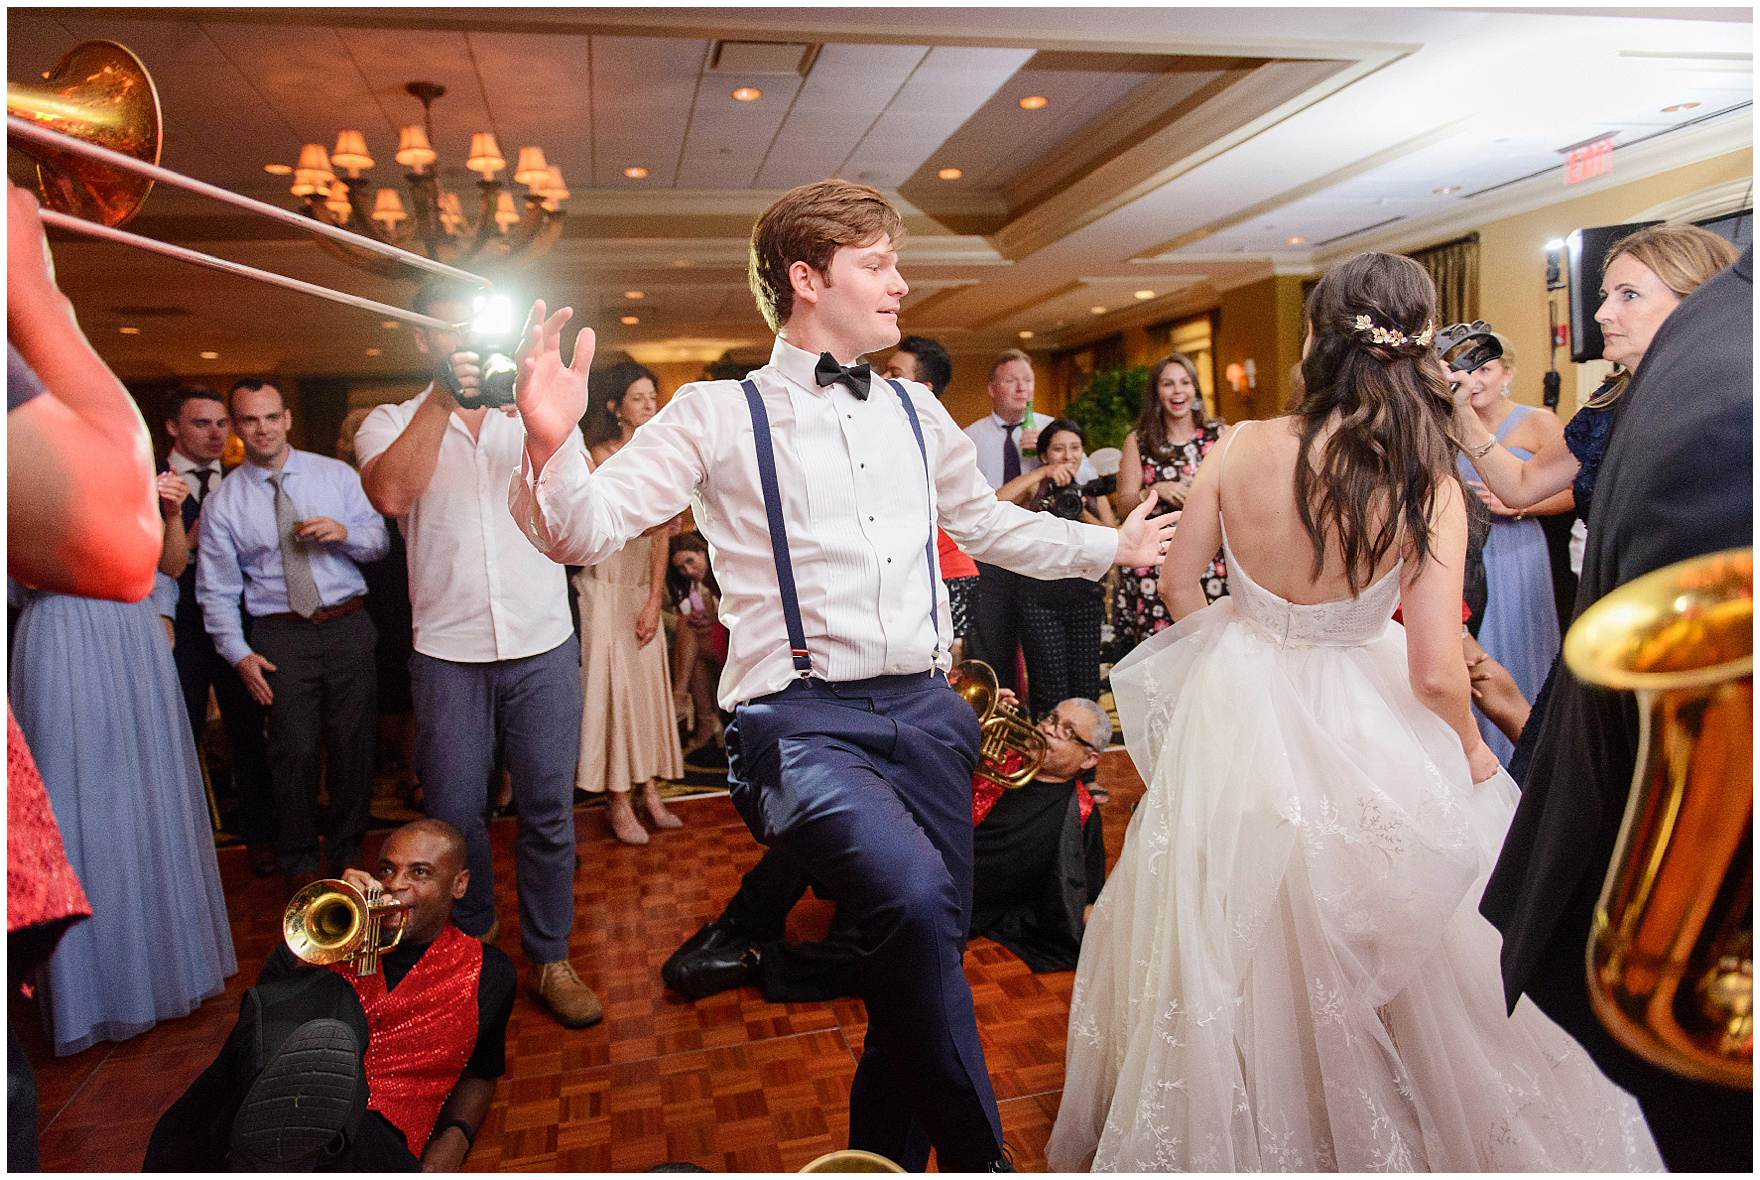 Guests dance to the music of the Gentlemen of Leisure band at a Butterfield Country Club wedding.